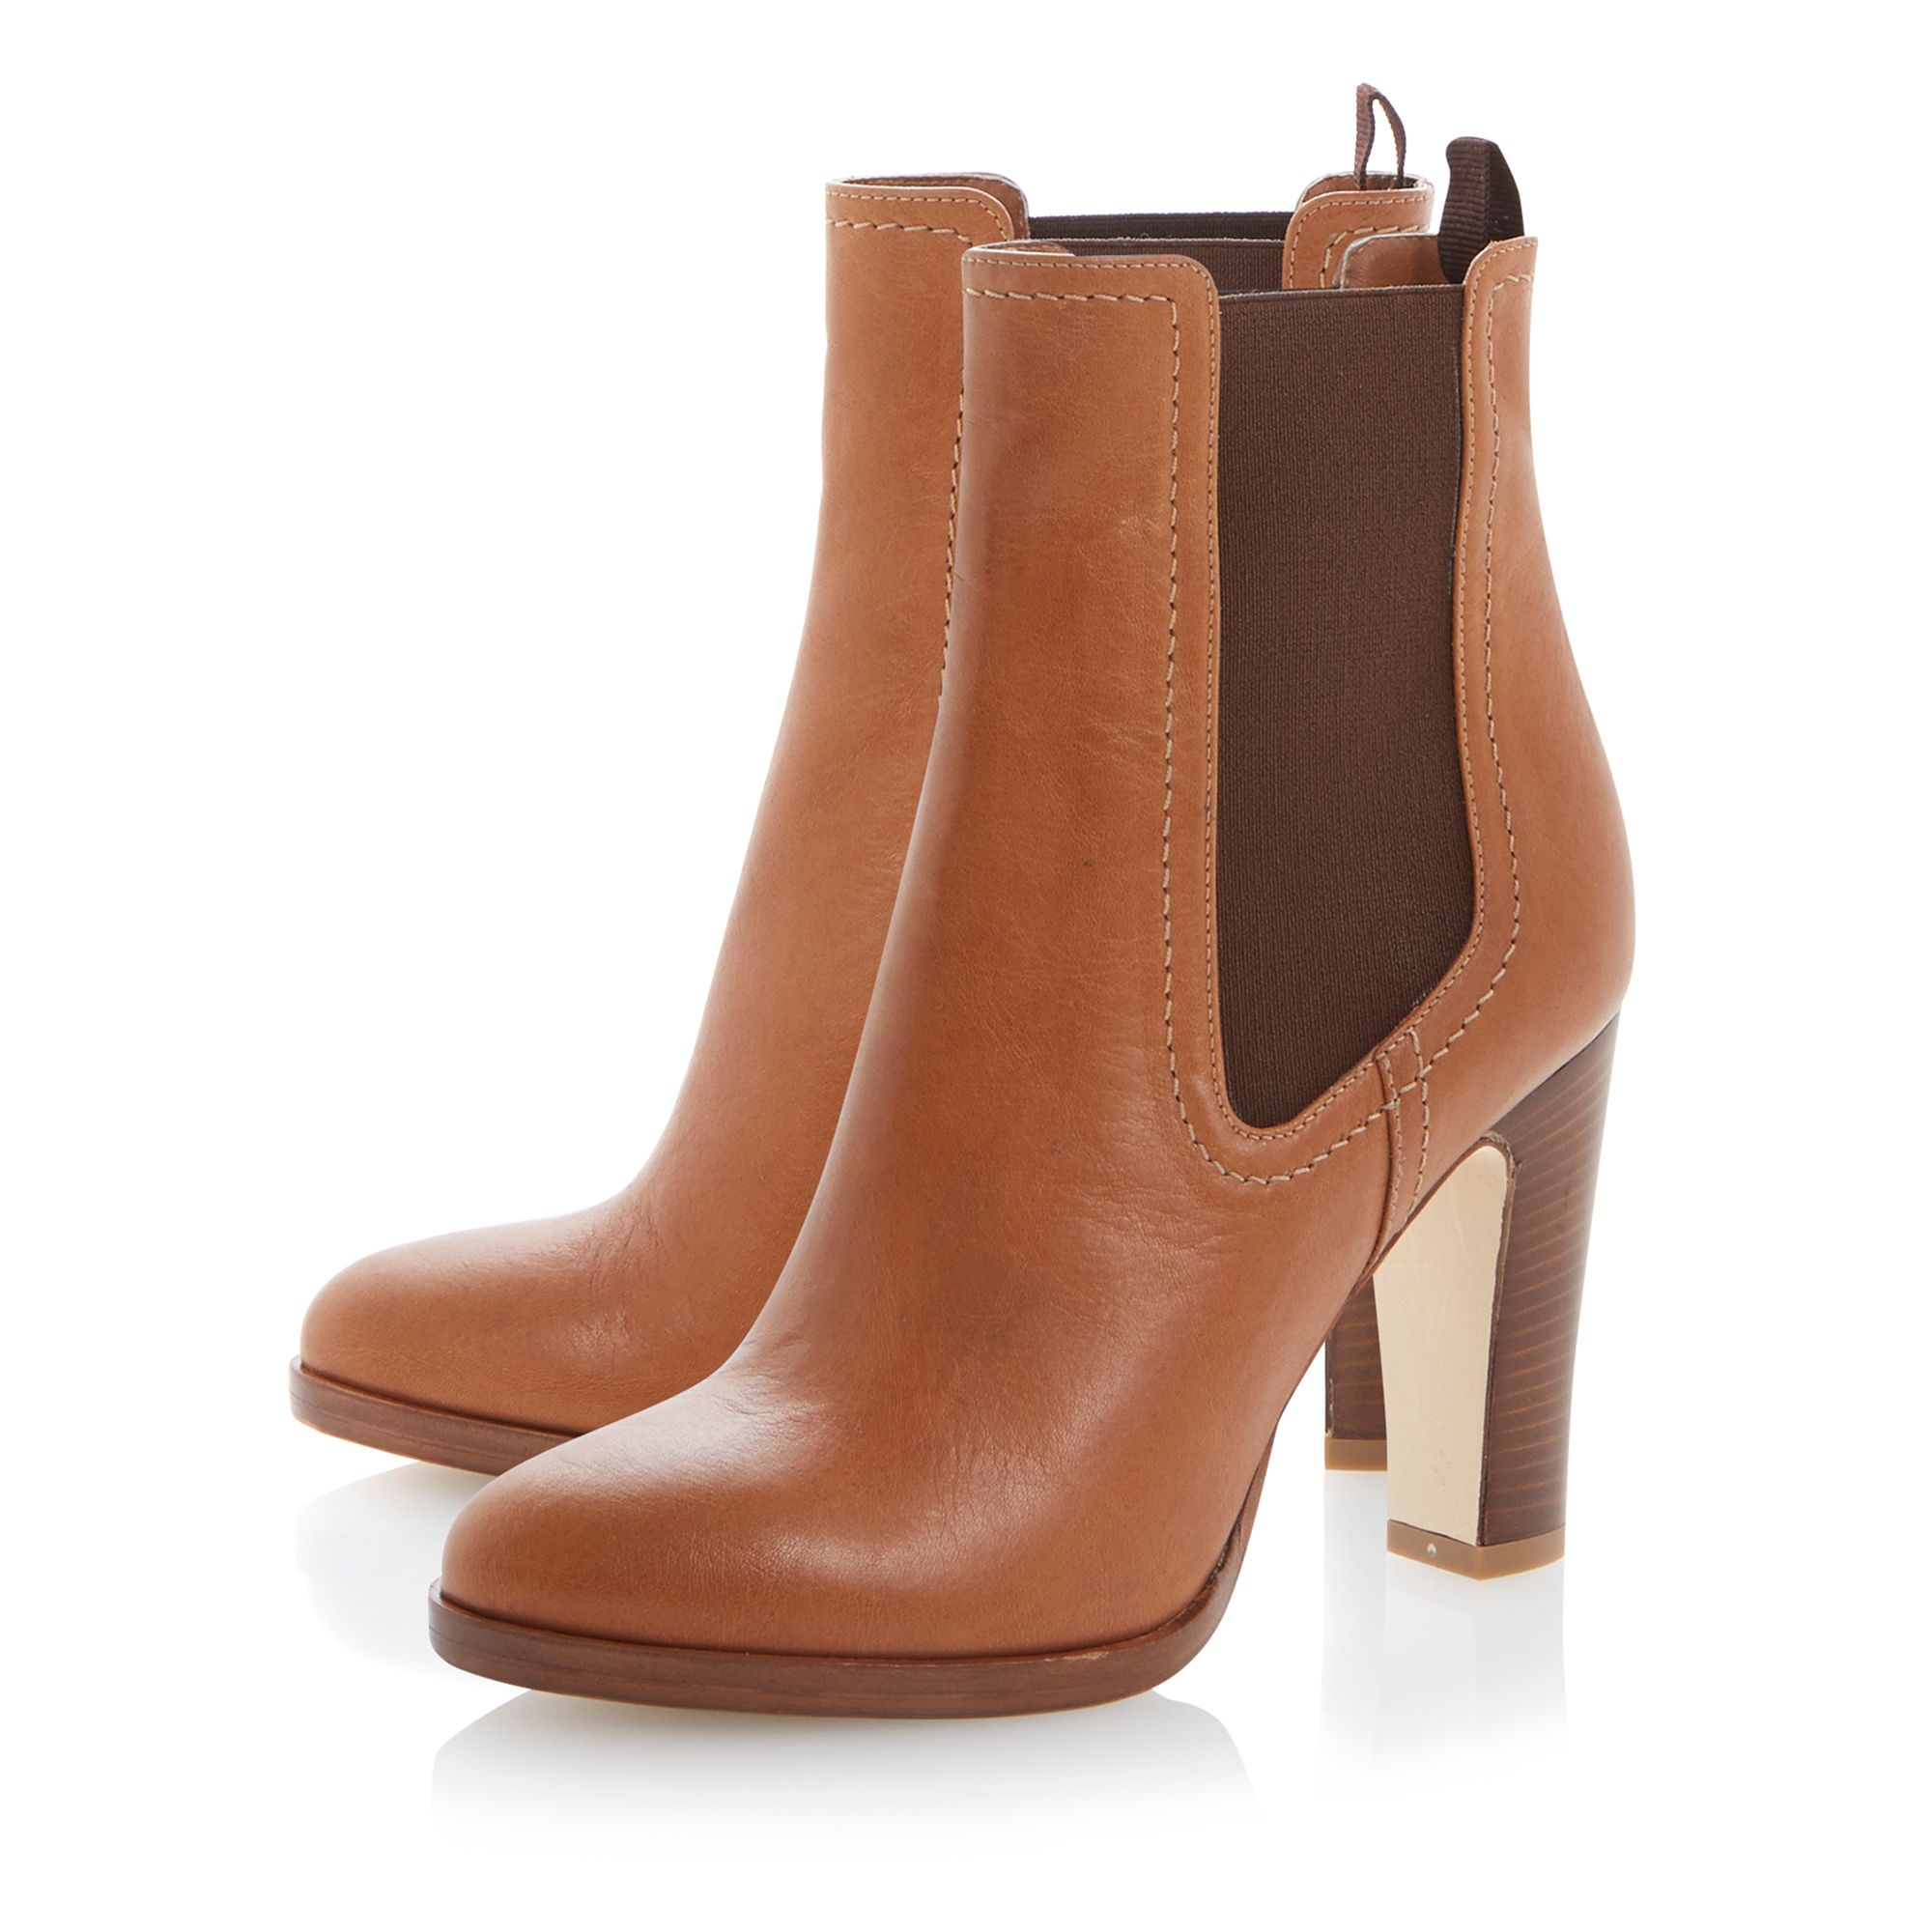 Robyn leather almond toe stacked heel boots